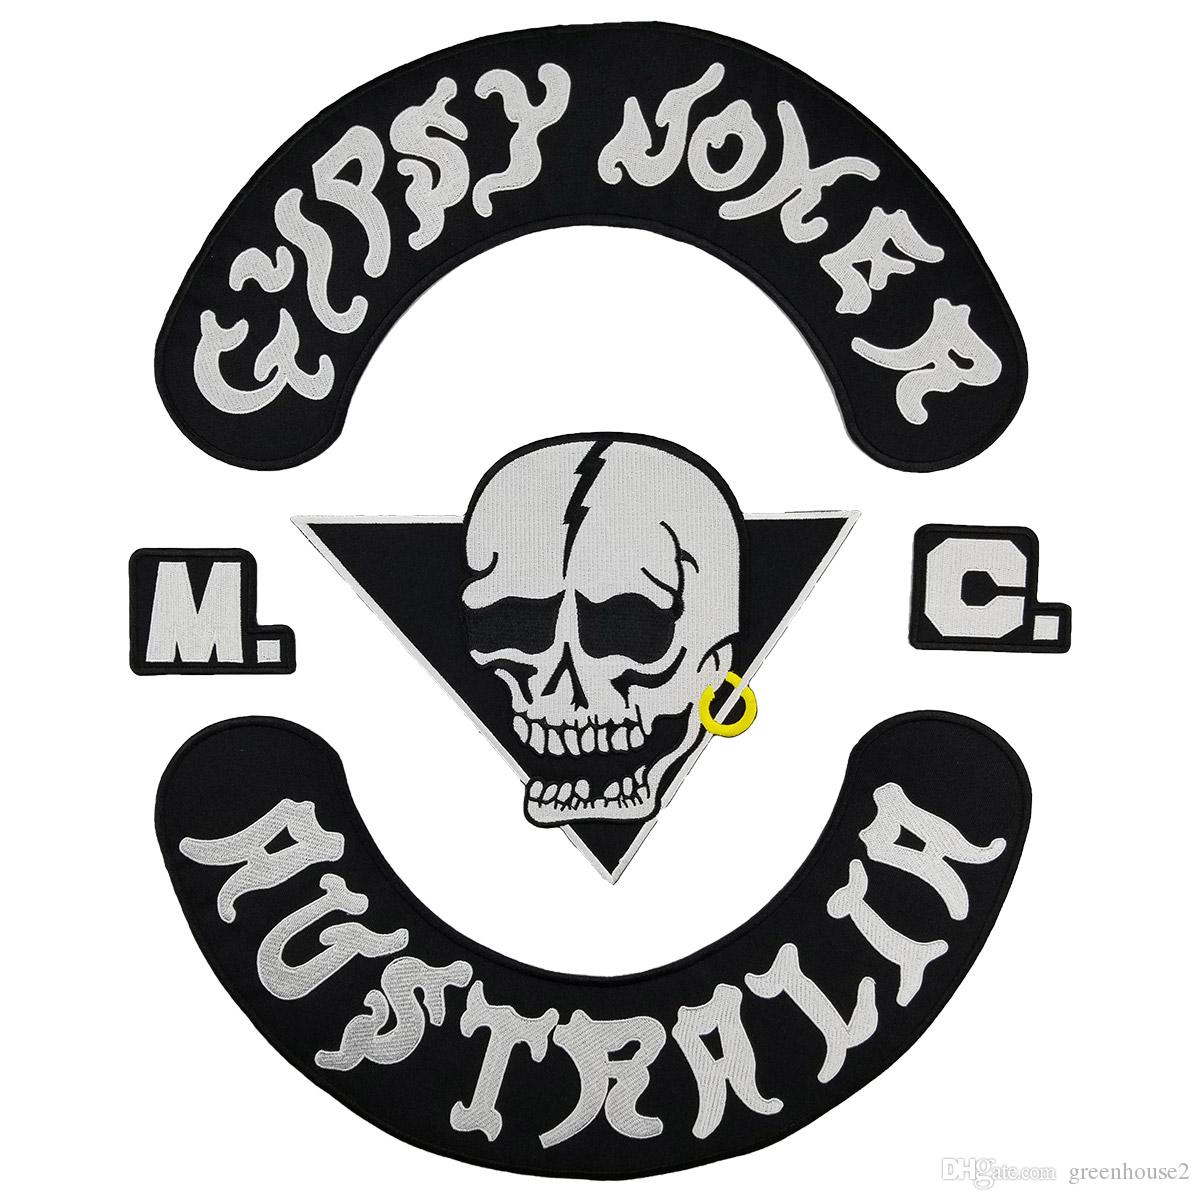 GYPSY JOKER AUSTRALIA MC Club Biker Vest Embroidered Patch Full Back Large Pattern For Rocker Biker Vest Patches for clothing Free Shipping